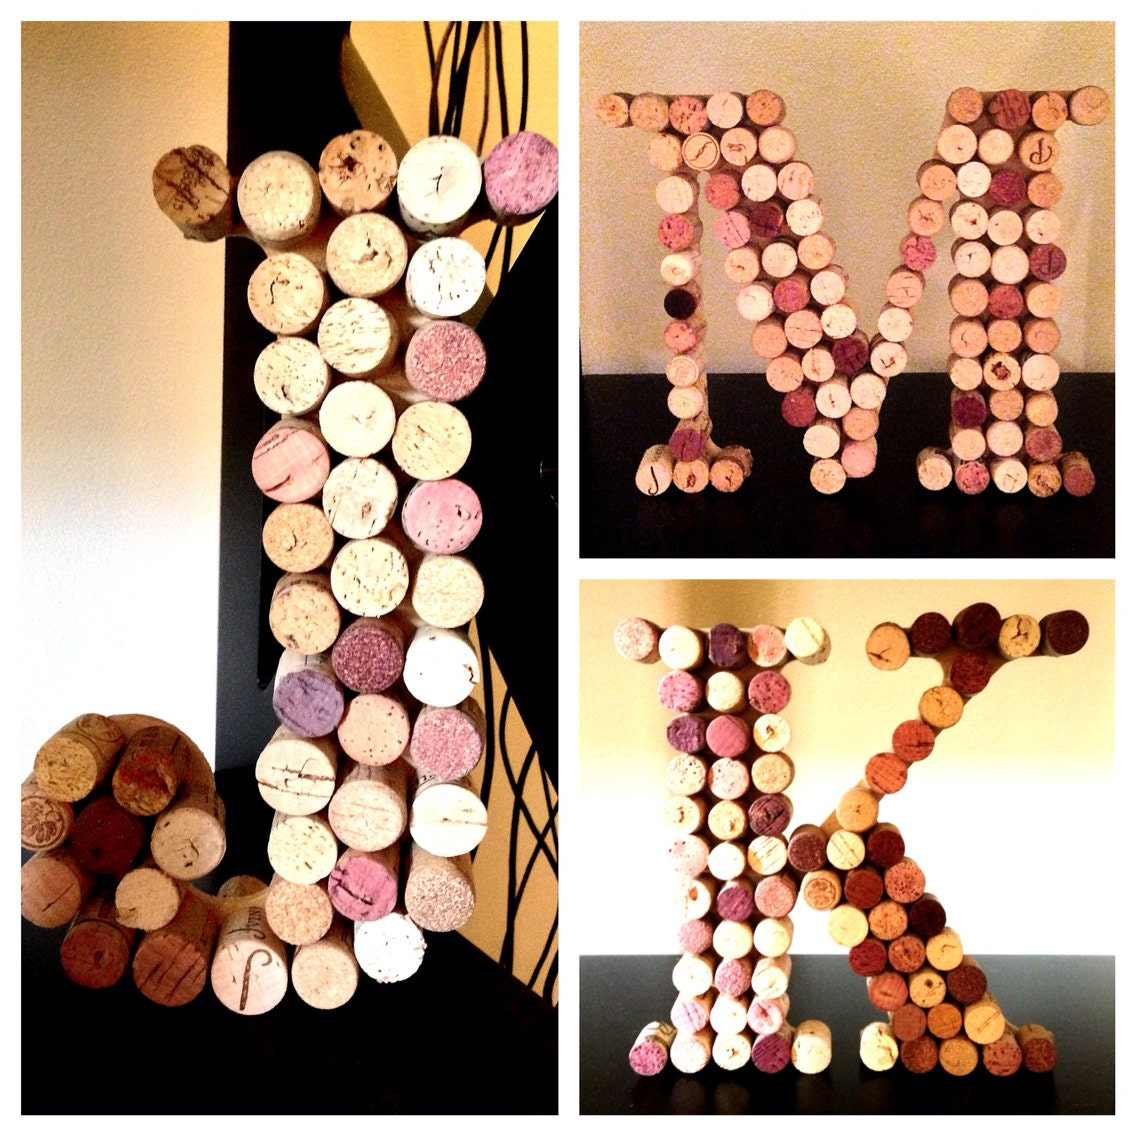 Personalized Wine Cork Letters - CreationsAndDesigns